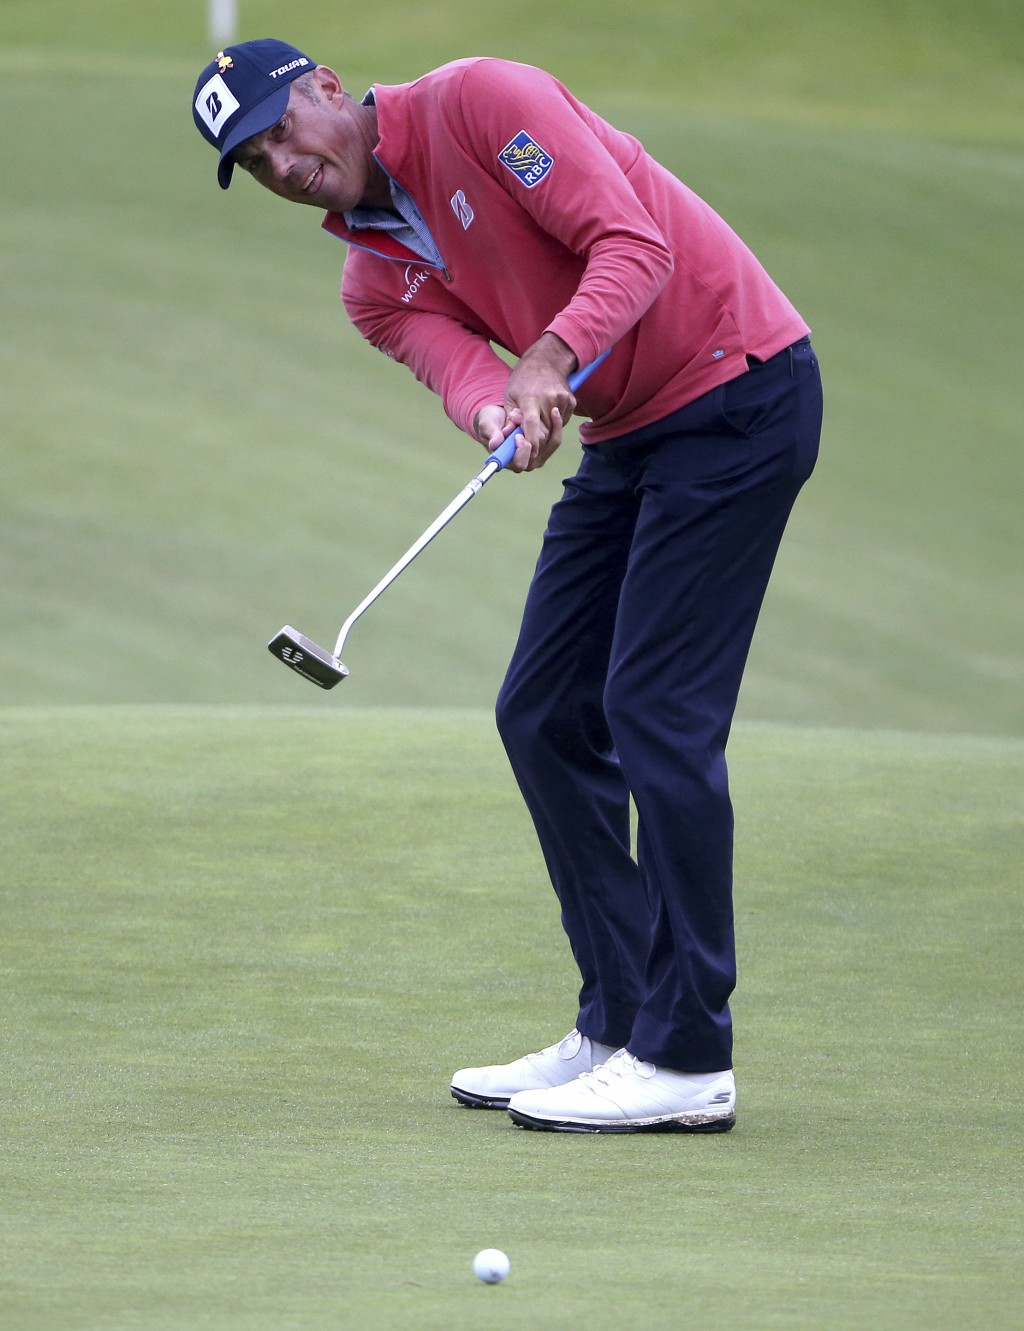 Matt Kuchar of the U.S.A. putts on the 9th green during the Australian Open Golf tournament in Sydney, Thursday, Nov. 15, 2018. (AP Photo/Rick Rycroft